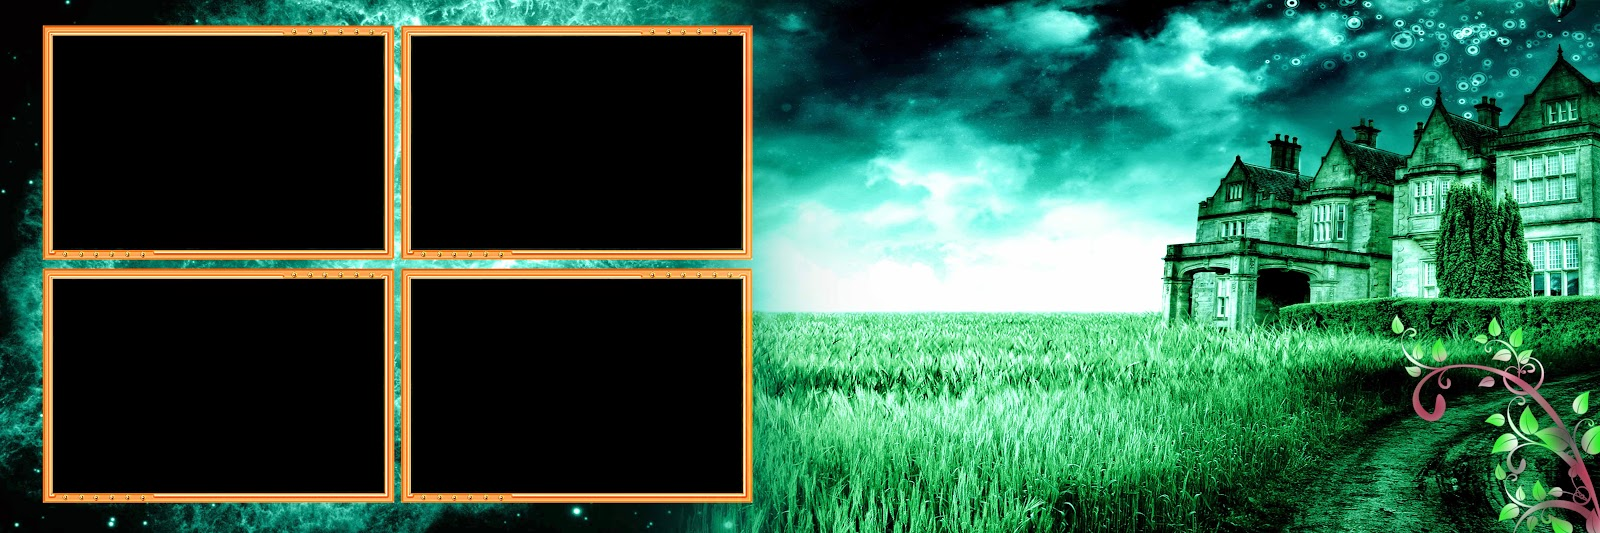 background images for photoshop free download